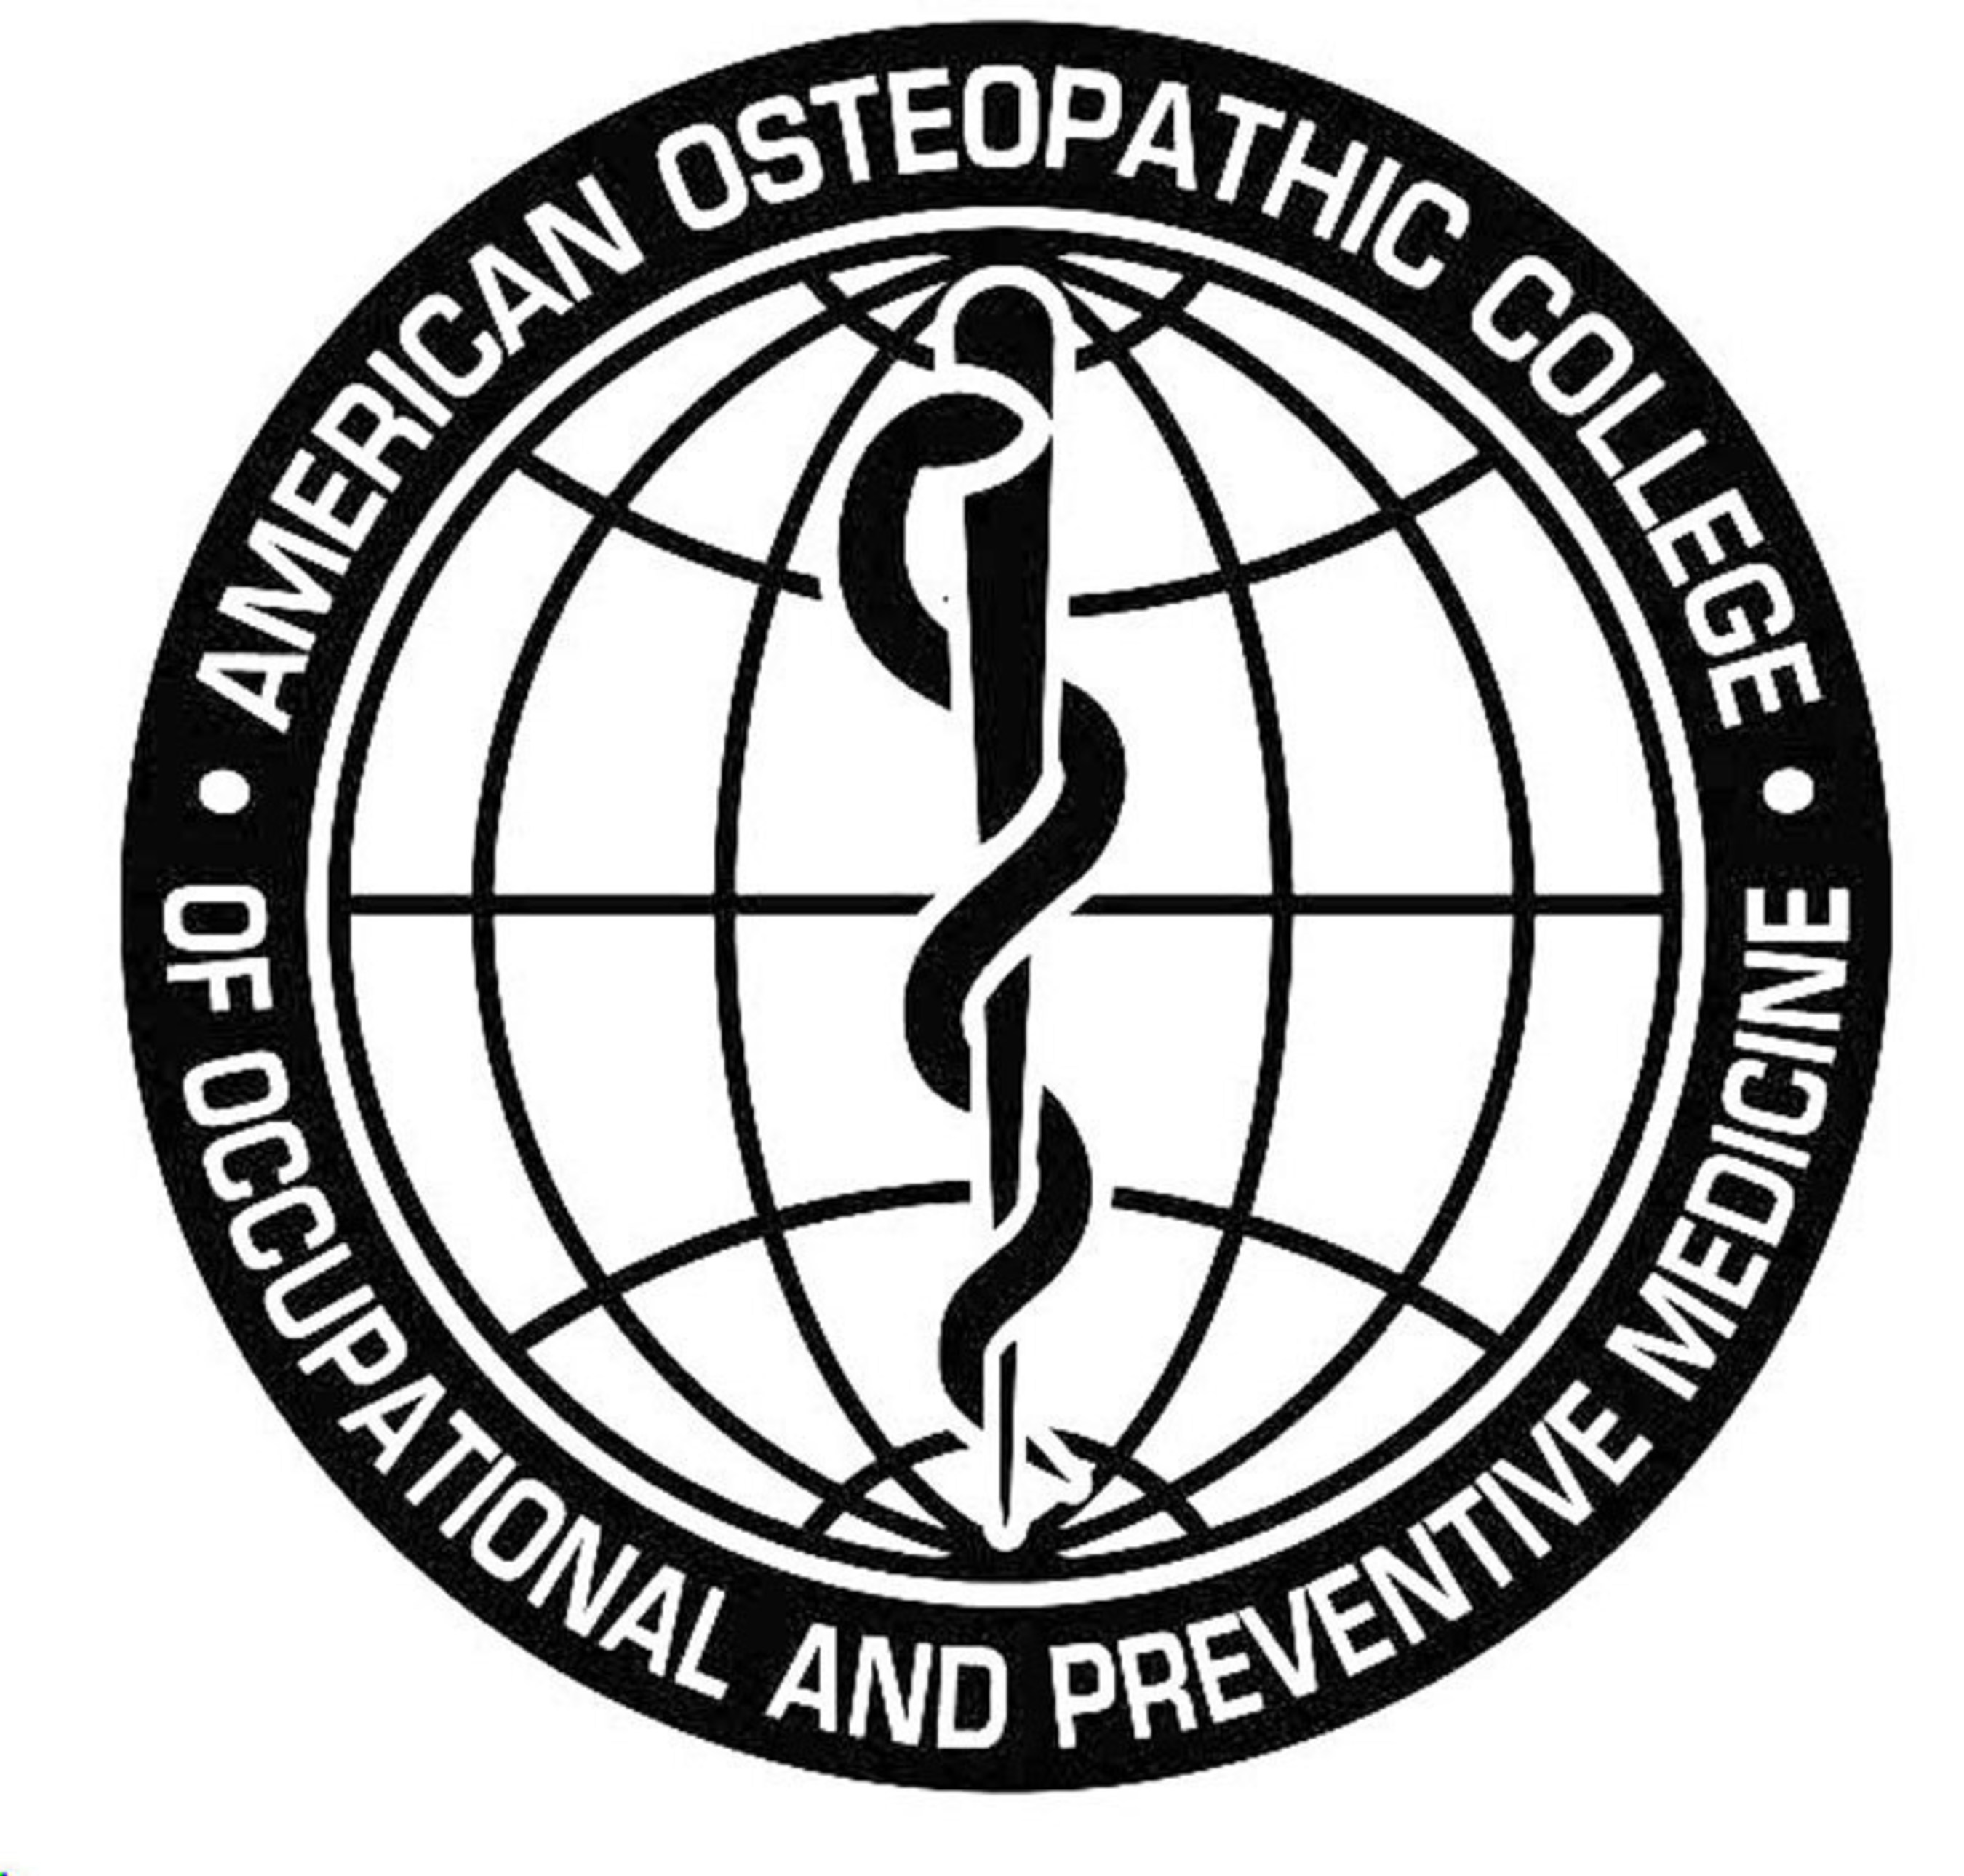 The American Osteopathic College Of Occupational And Preventive